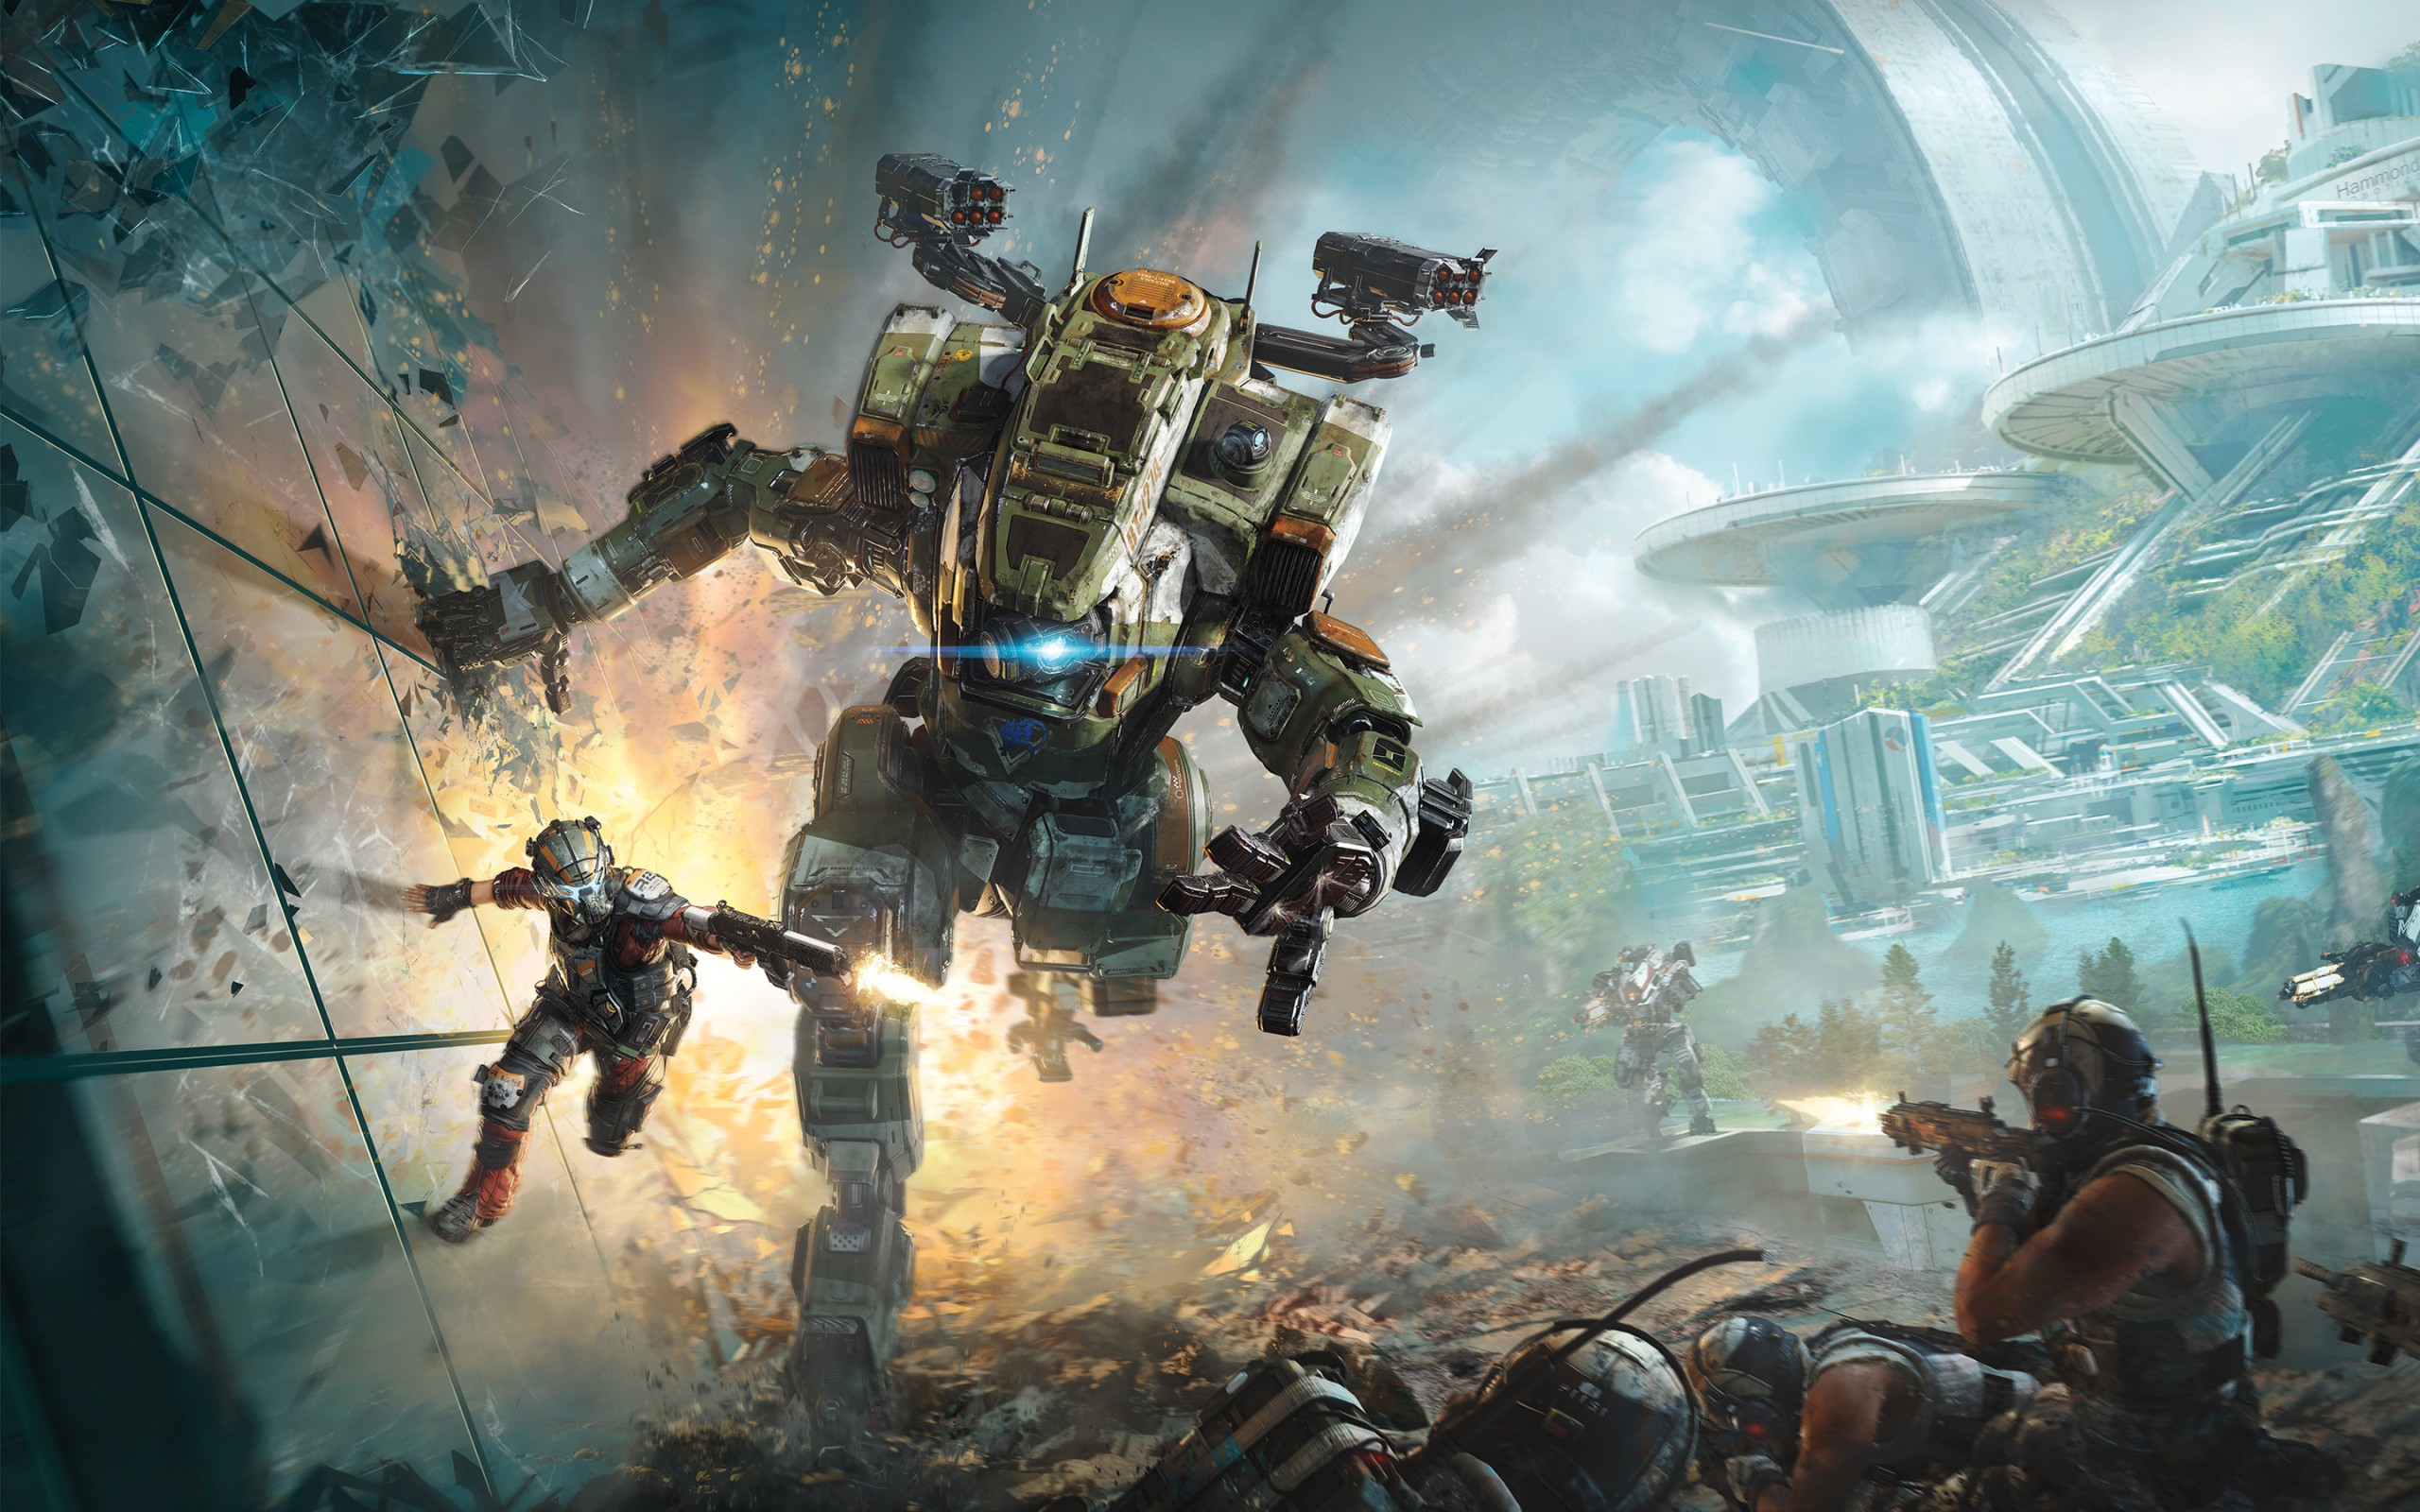 Fall Wallpaper For Ipad 2 Titanfall 2 2016 Game 4k Wallpapers Hd Wallpapers Id